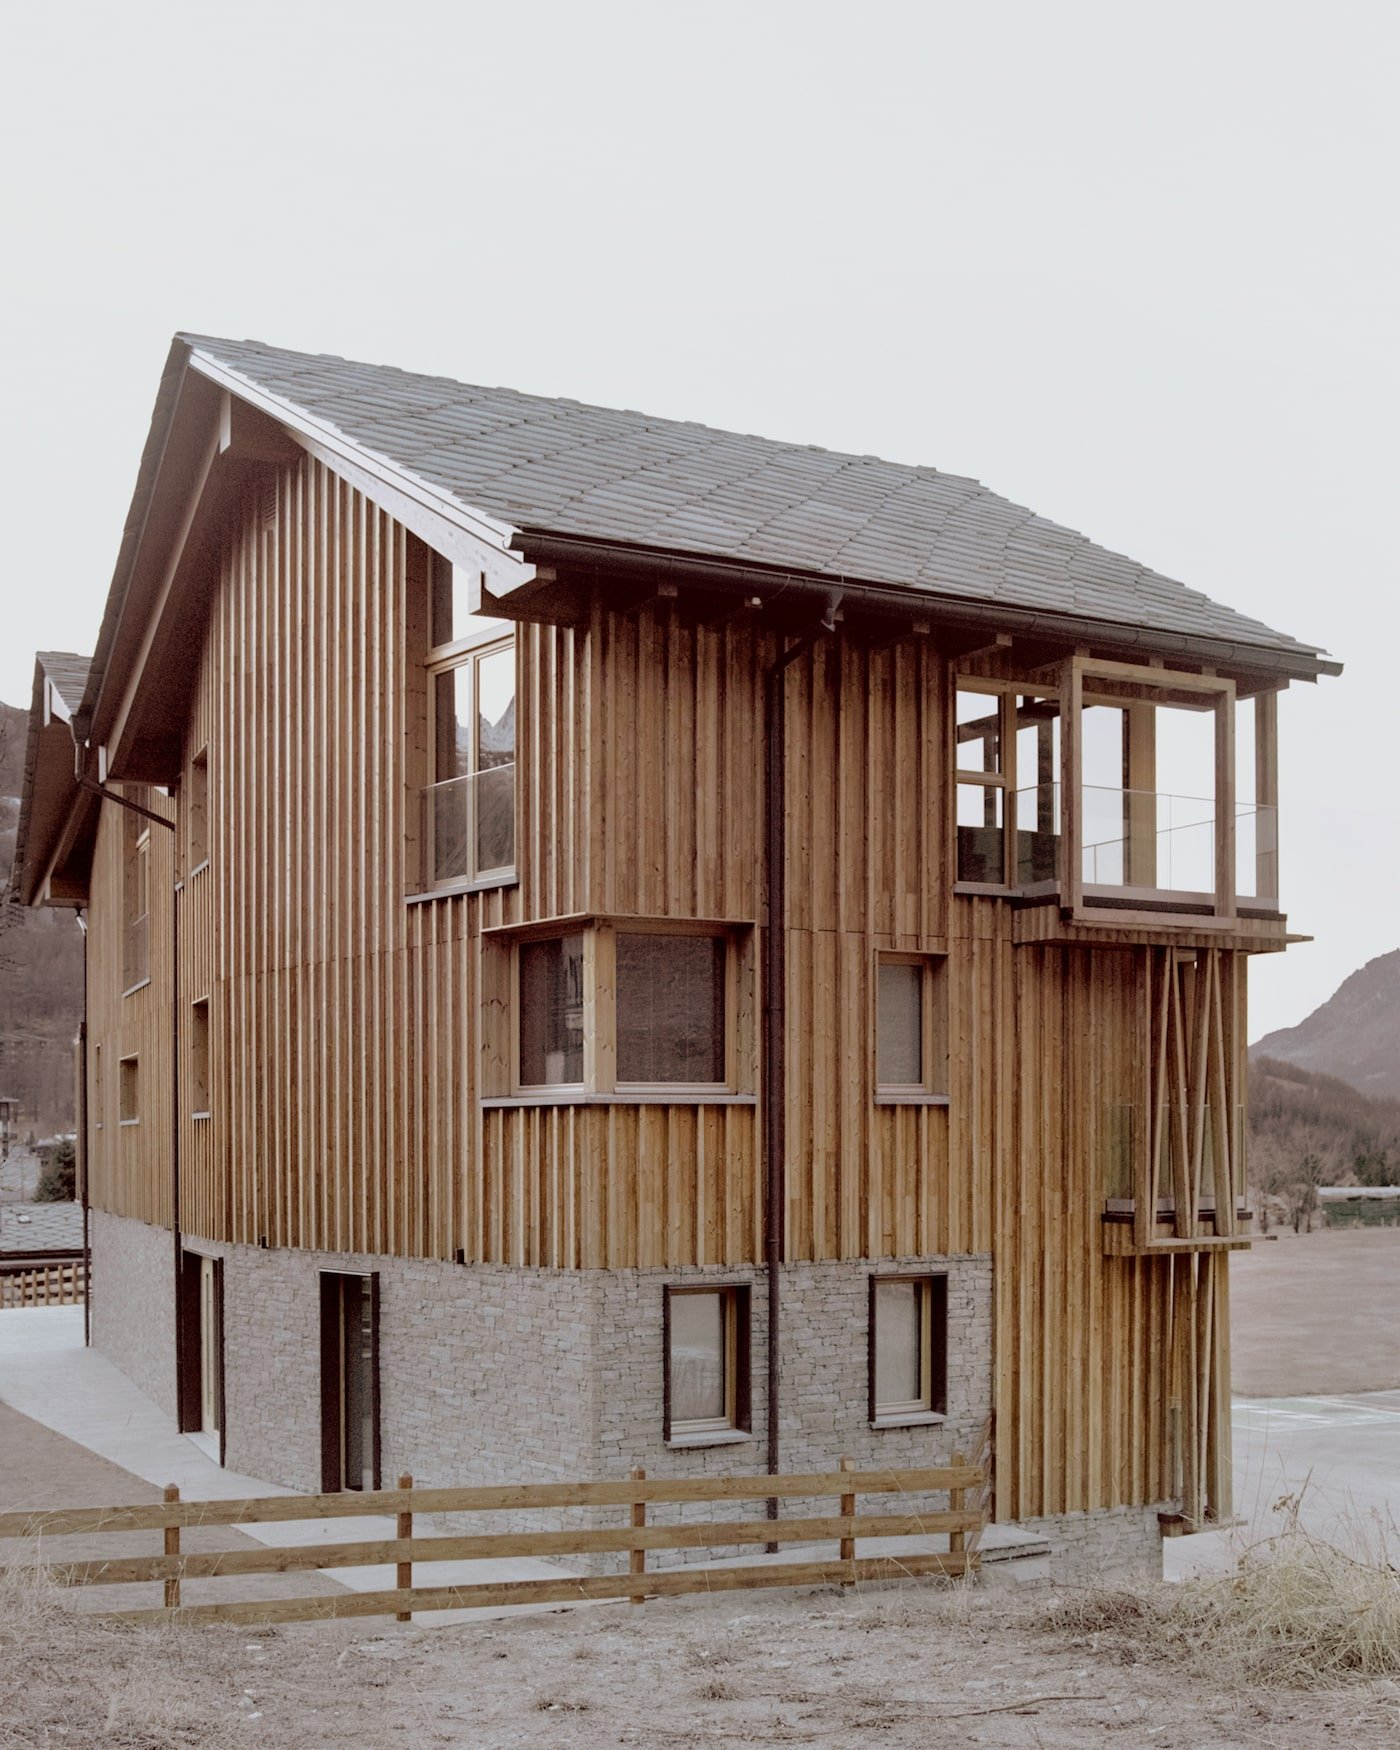 Rear view of prefabricated timber Climbers Refuge